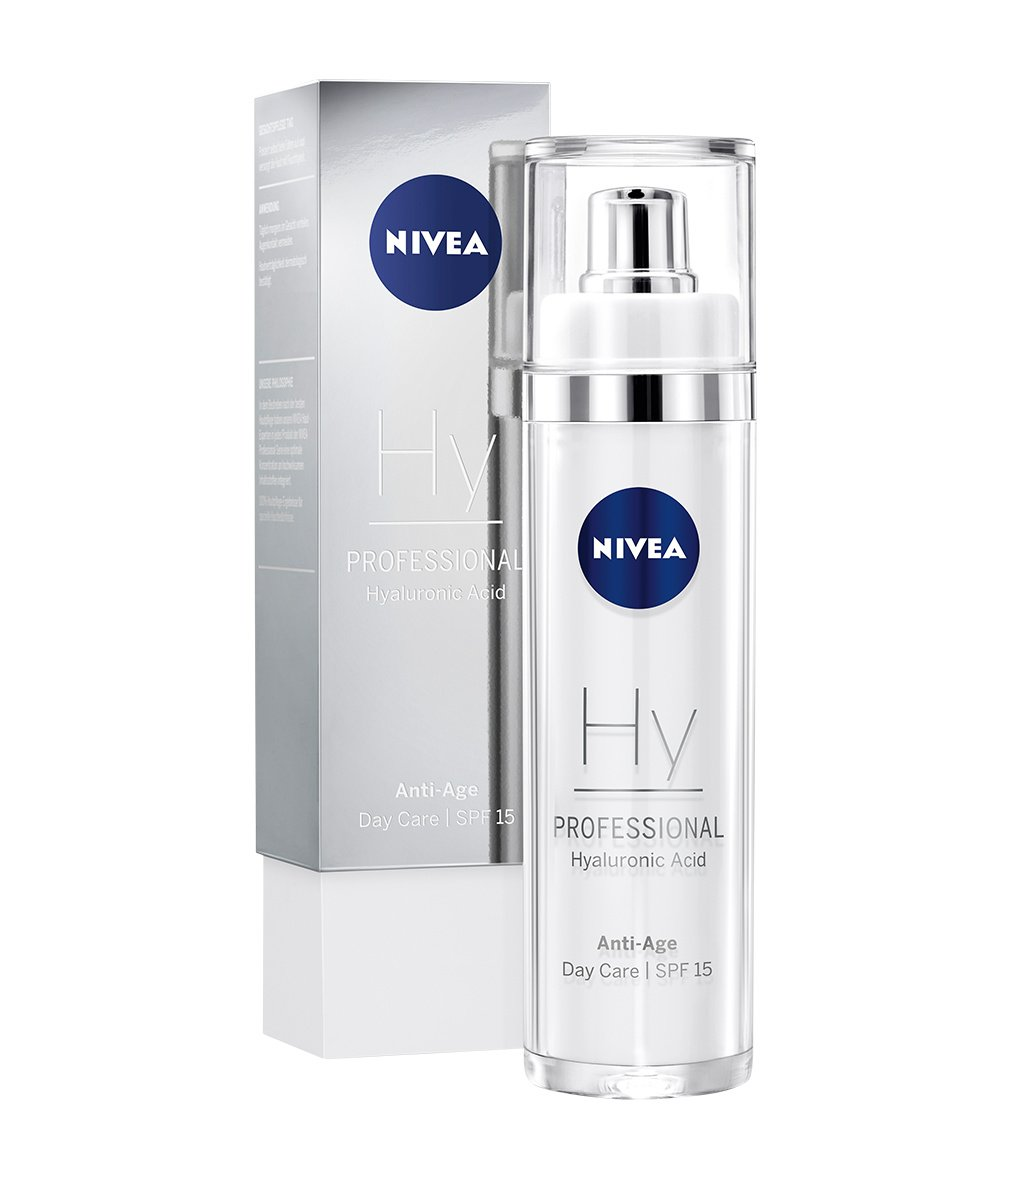 NIVEA PROFESSIONAL Day Care Face Cream With Hyaluronic Acid - Anti-Aging, SPF 15, 50 ml Beiersdorf AG